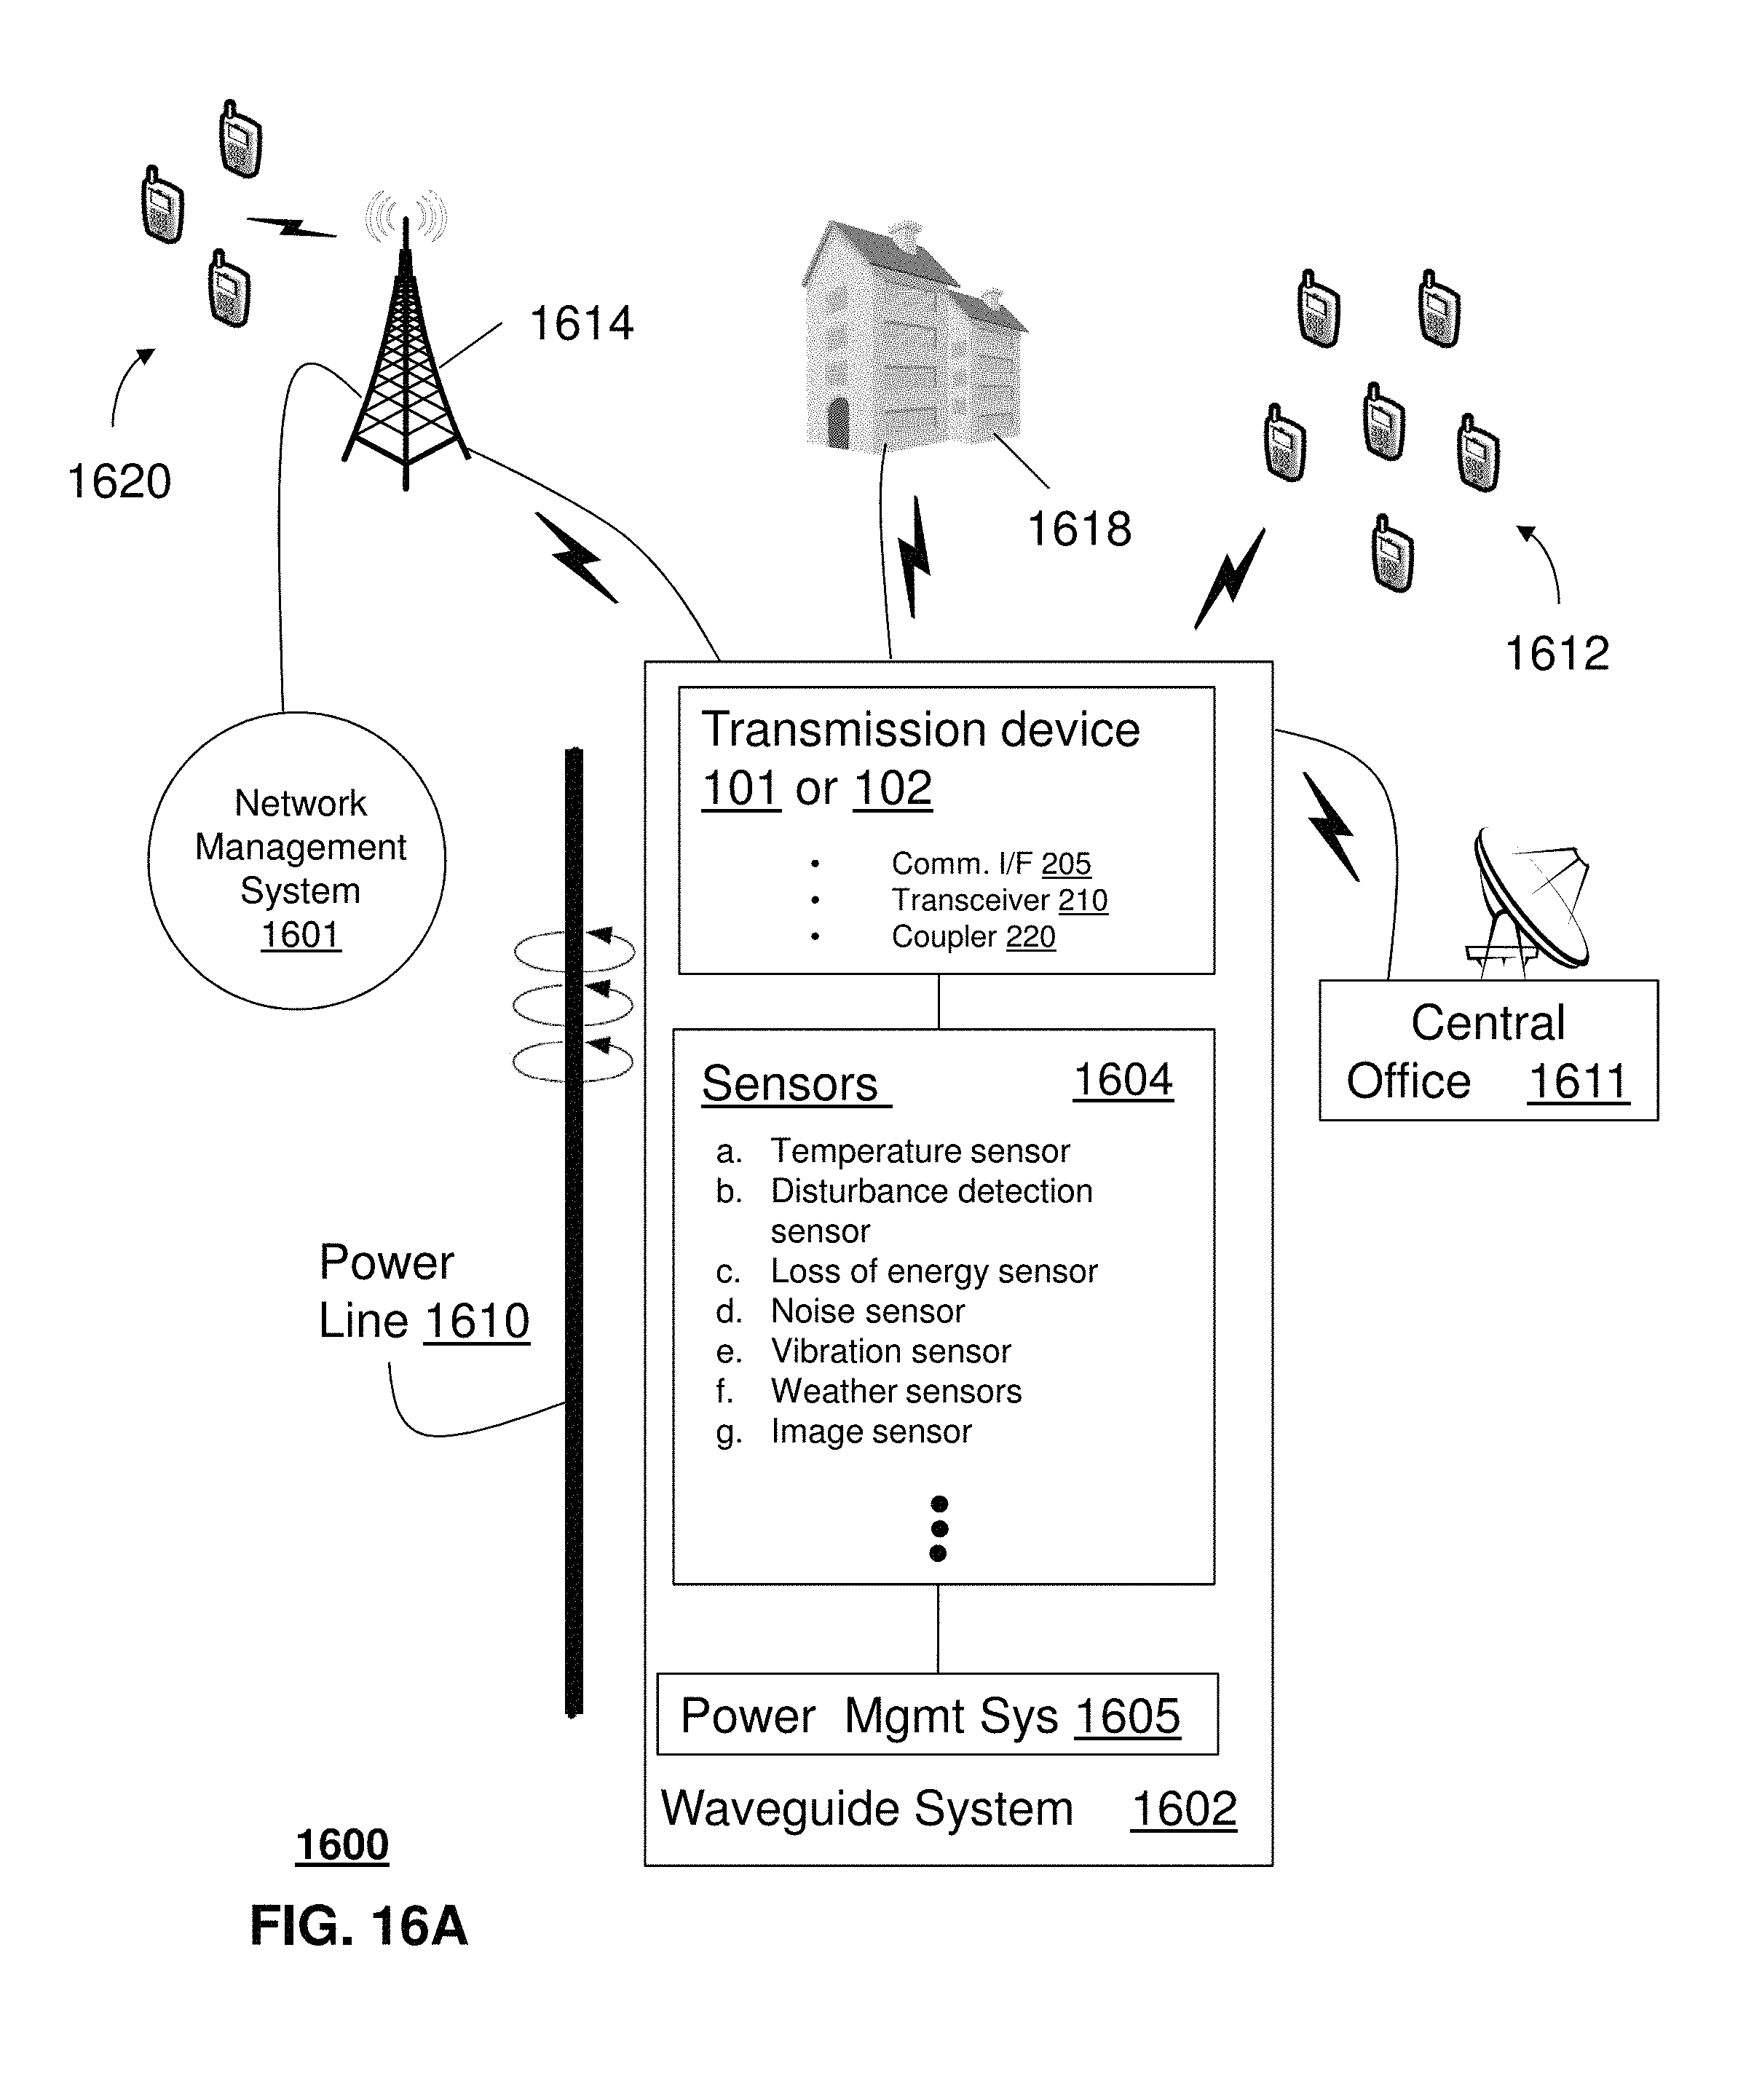 niles ir repeater wiring diagram Download-US B2 Directional coupling device and methods for use therewith Google Patents 19-q